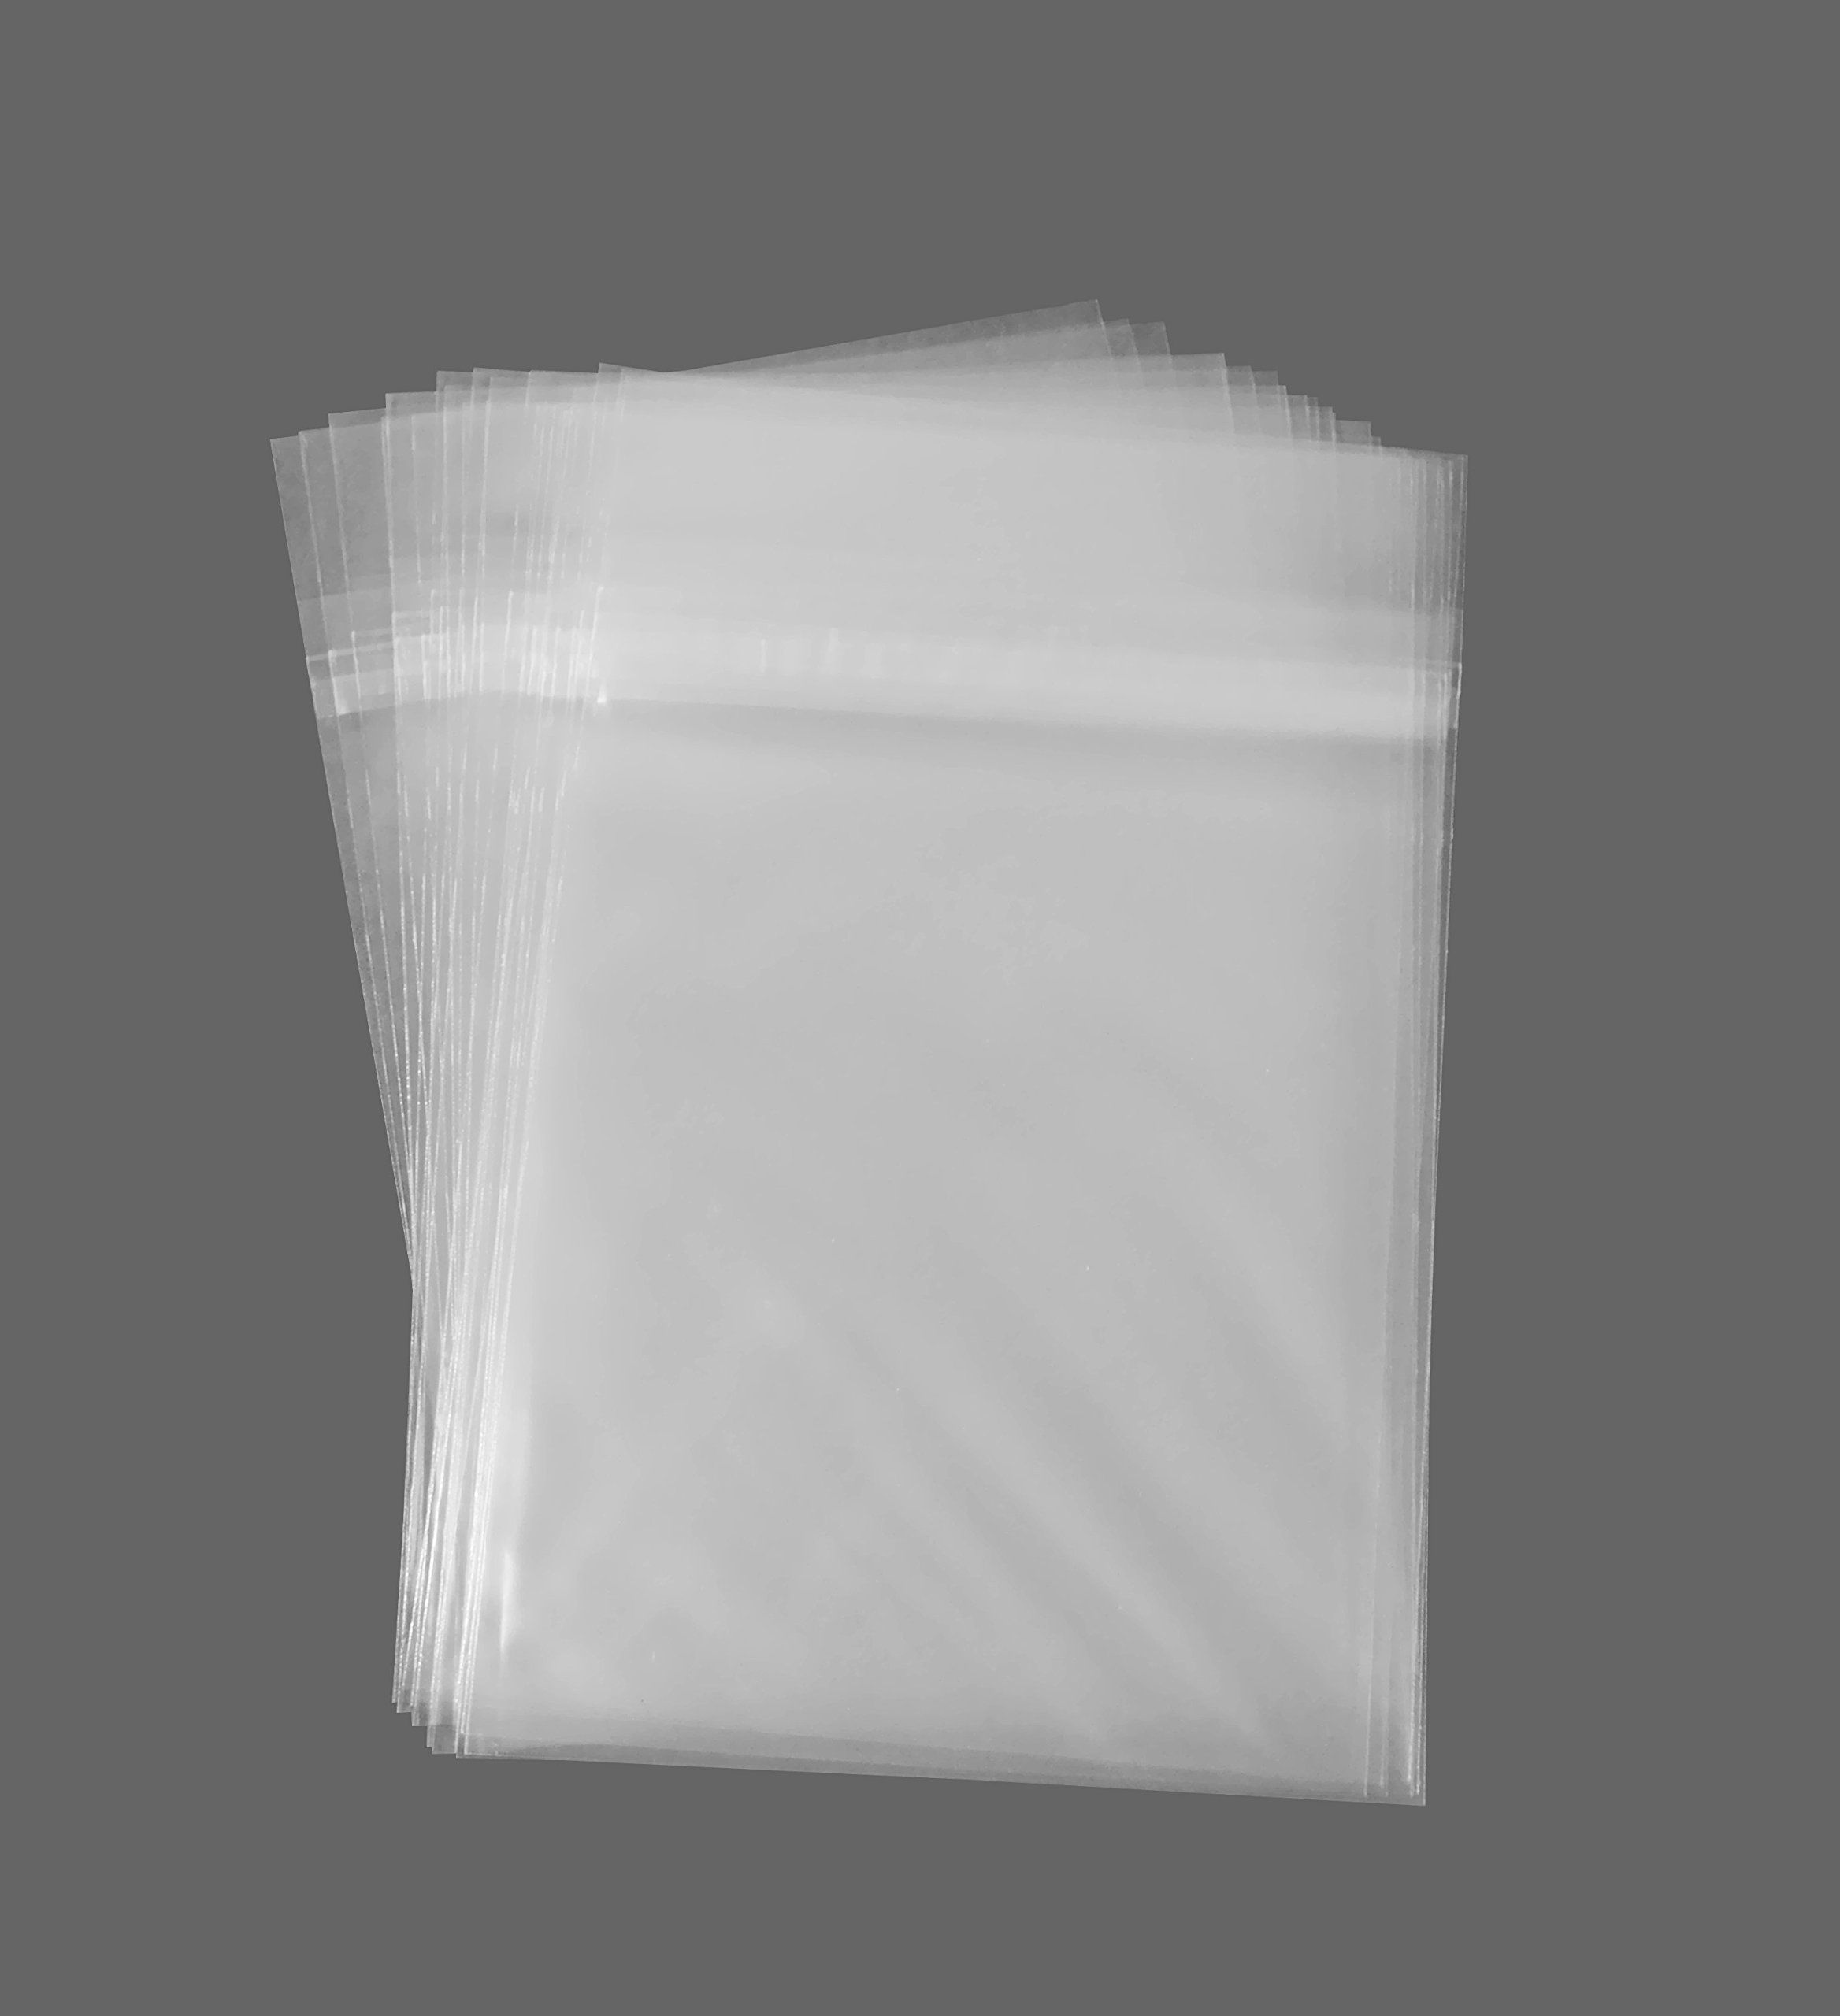 Acid Free Bags Pack of 100 5x7 White Picture Mats Mattes with White Core Bevel Cut for 4x6 Photo Golden State Art Backing